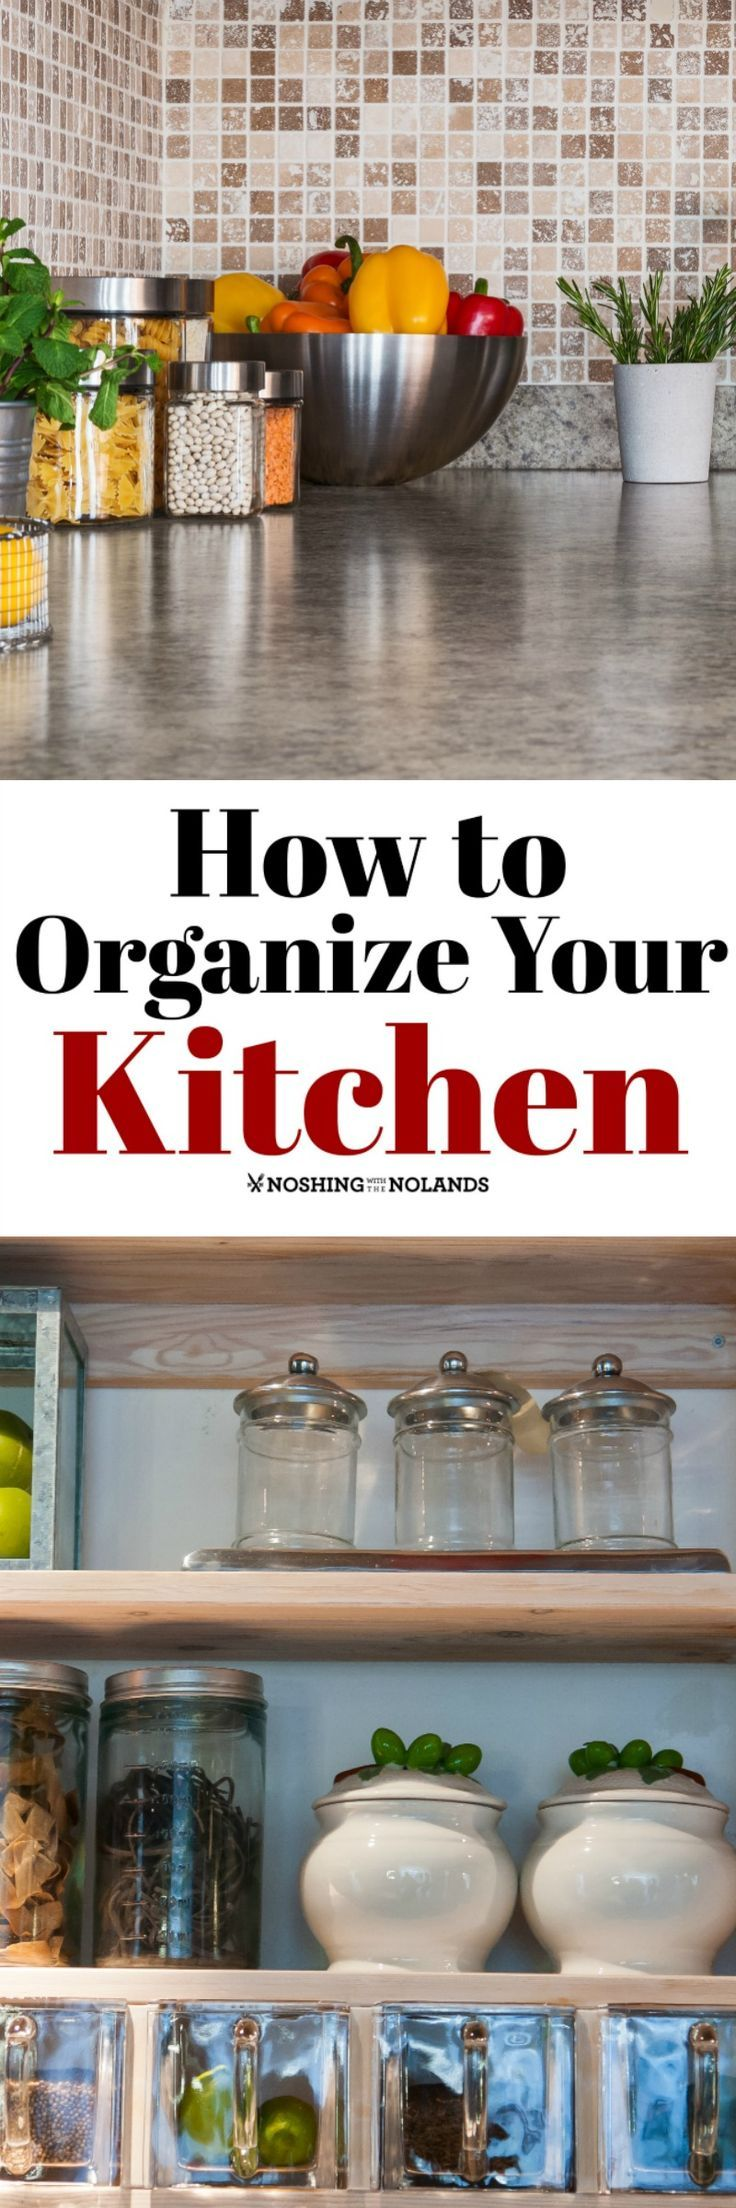 How to Organize Your Kitchen by Noshing With The Nolands includes ...